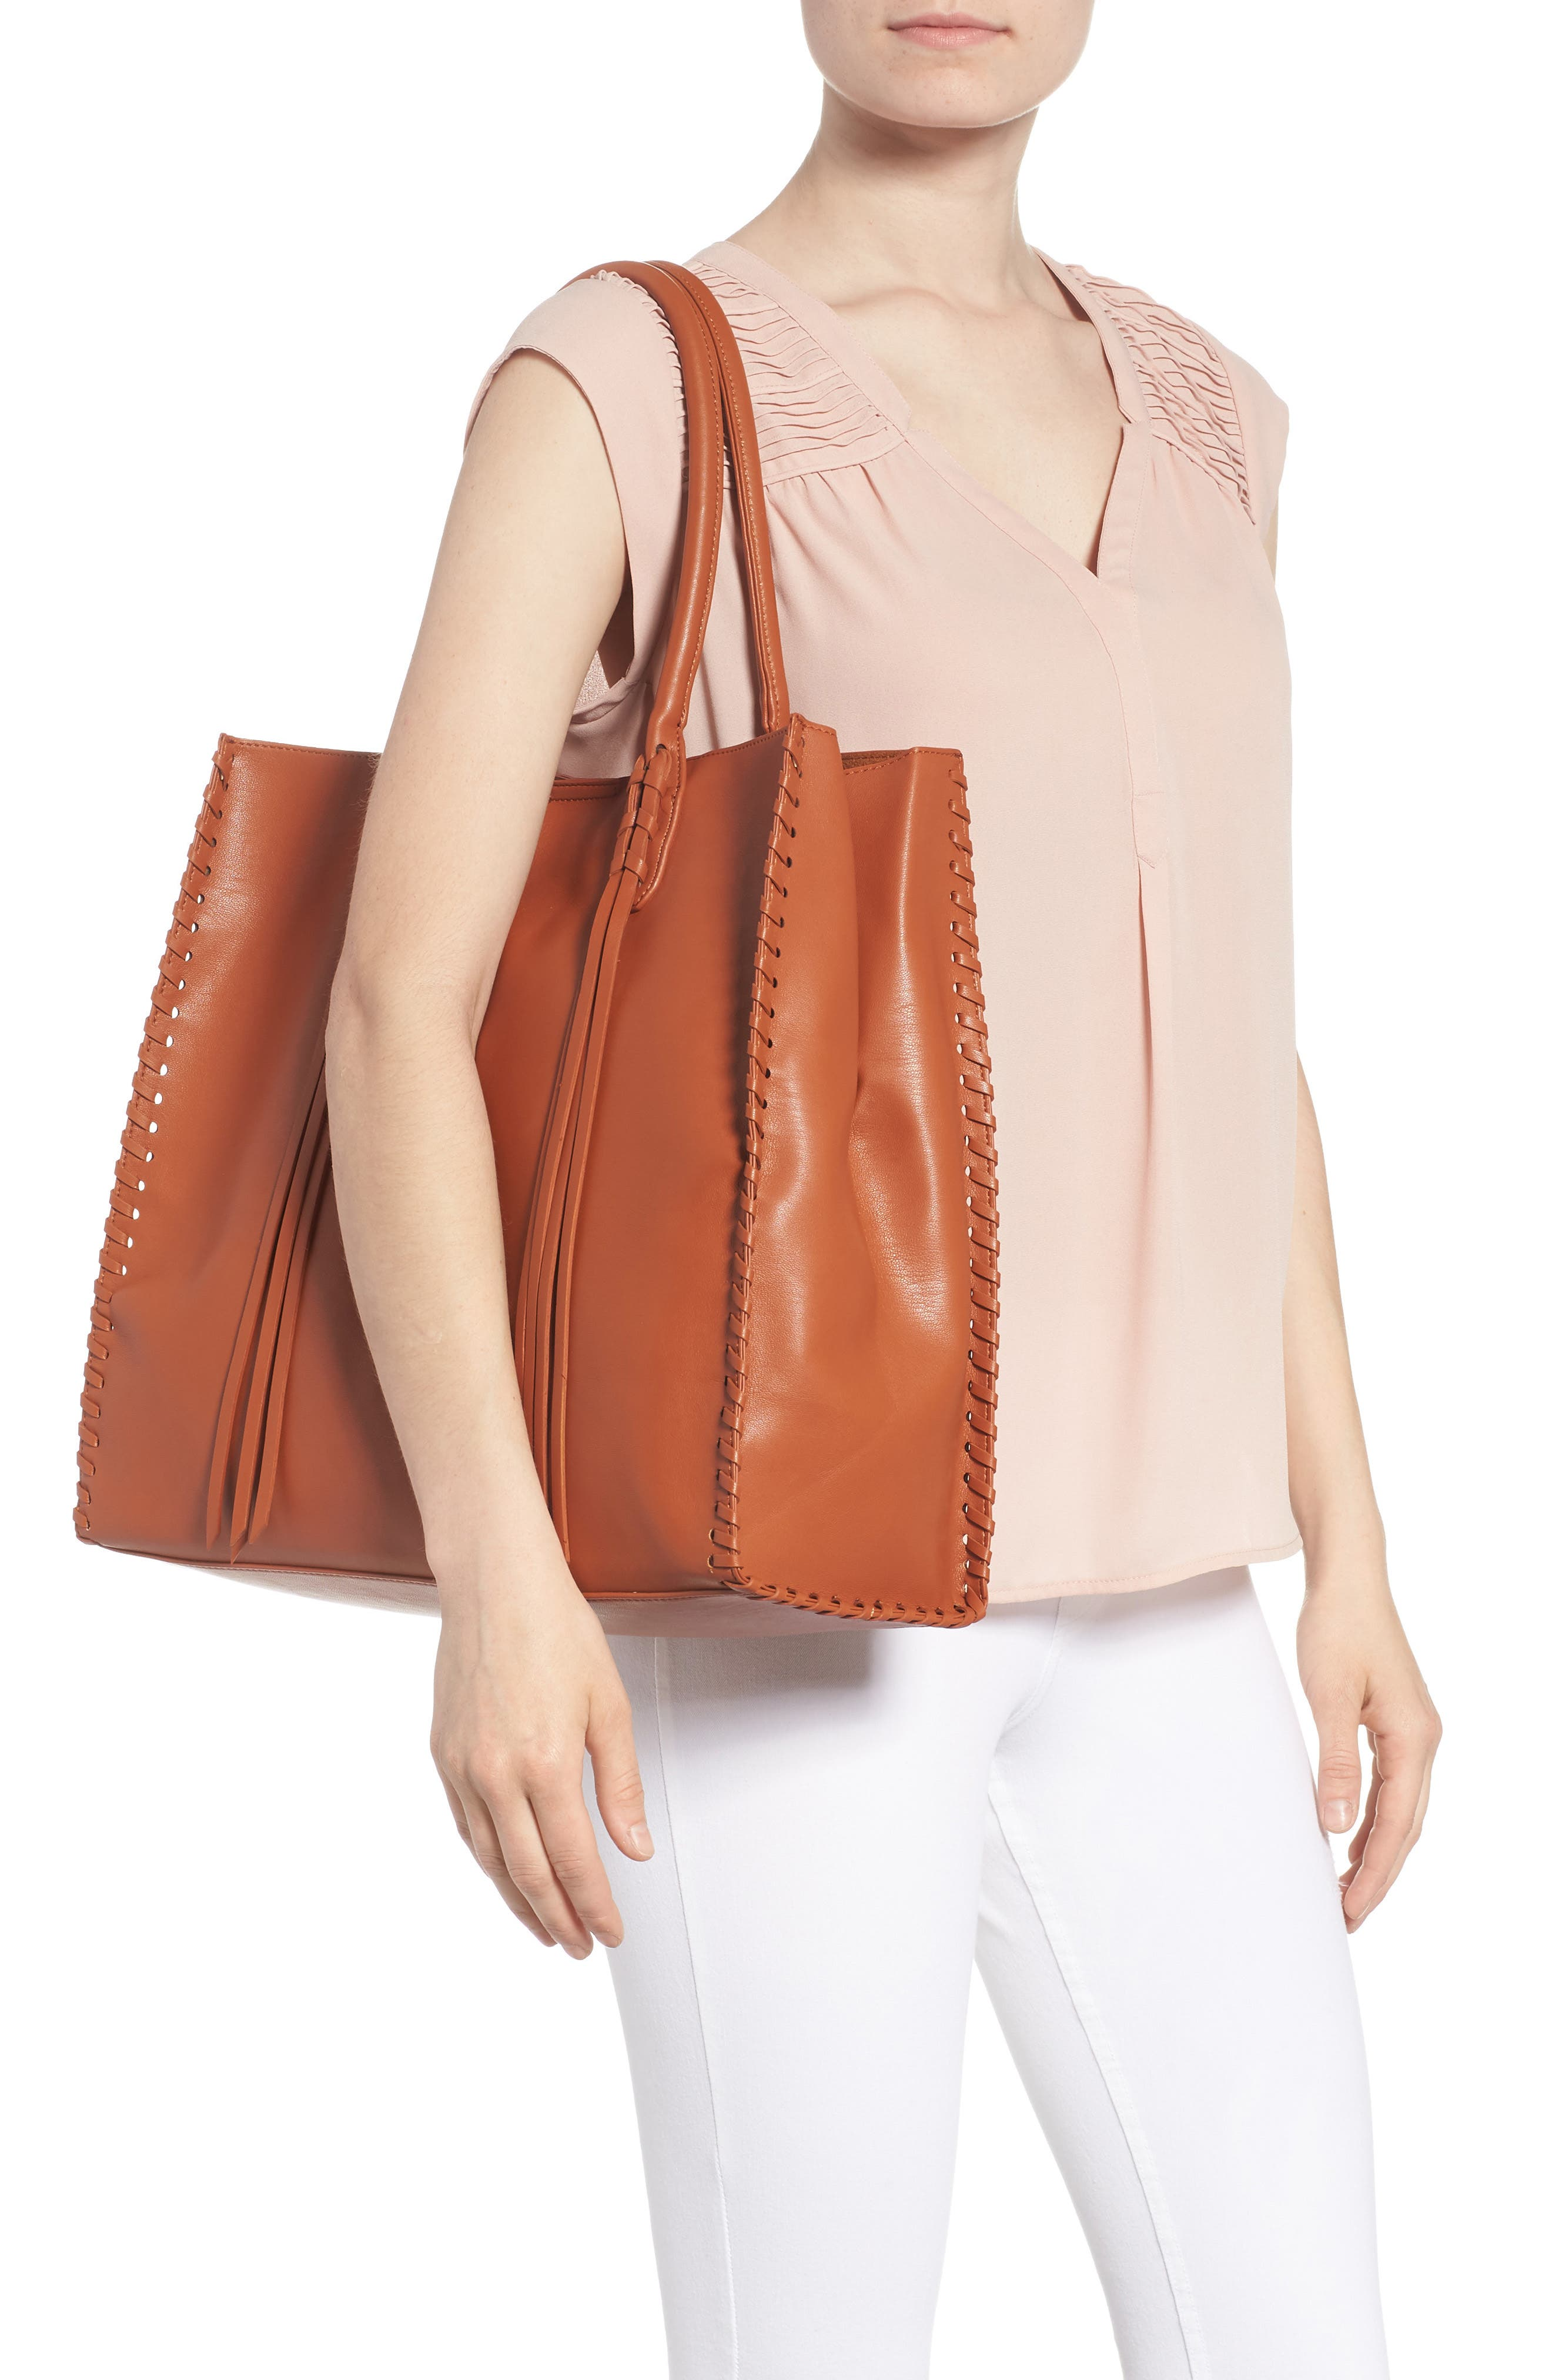 Cadence Faux Leather Whipstitch Tote,                             Alternate thumbnail 2, color,                             Cognac